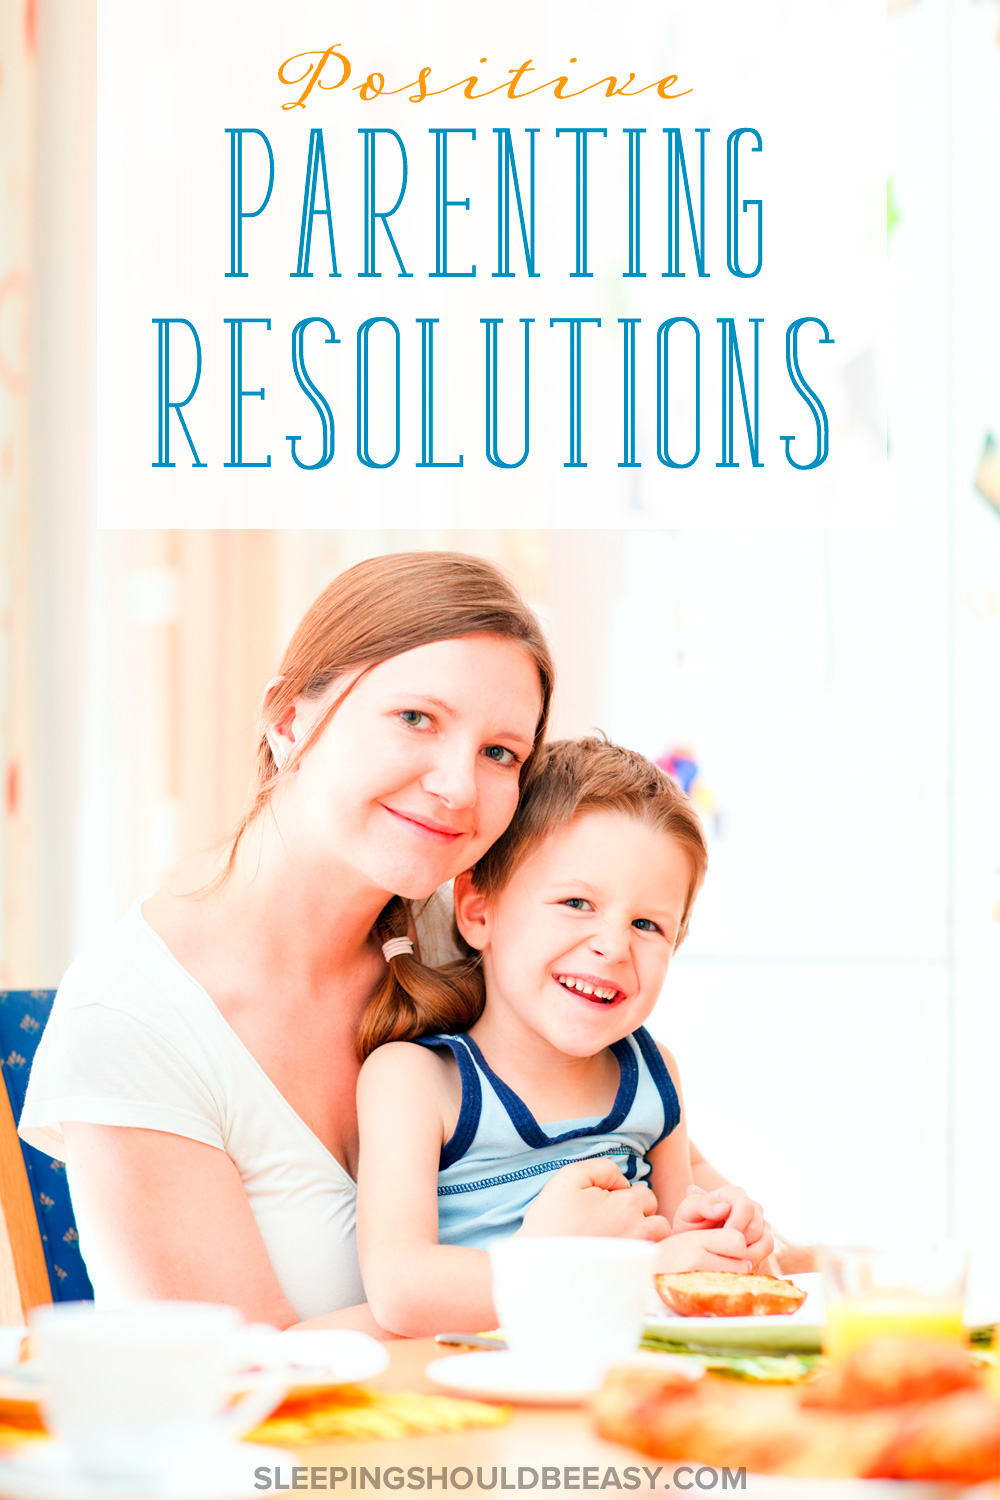 Ready to make resolutions? Remember to include positive parenting resolutions. These 3 goals will set you on the right path.